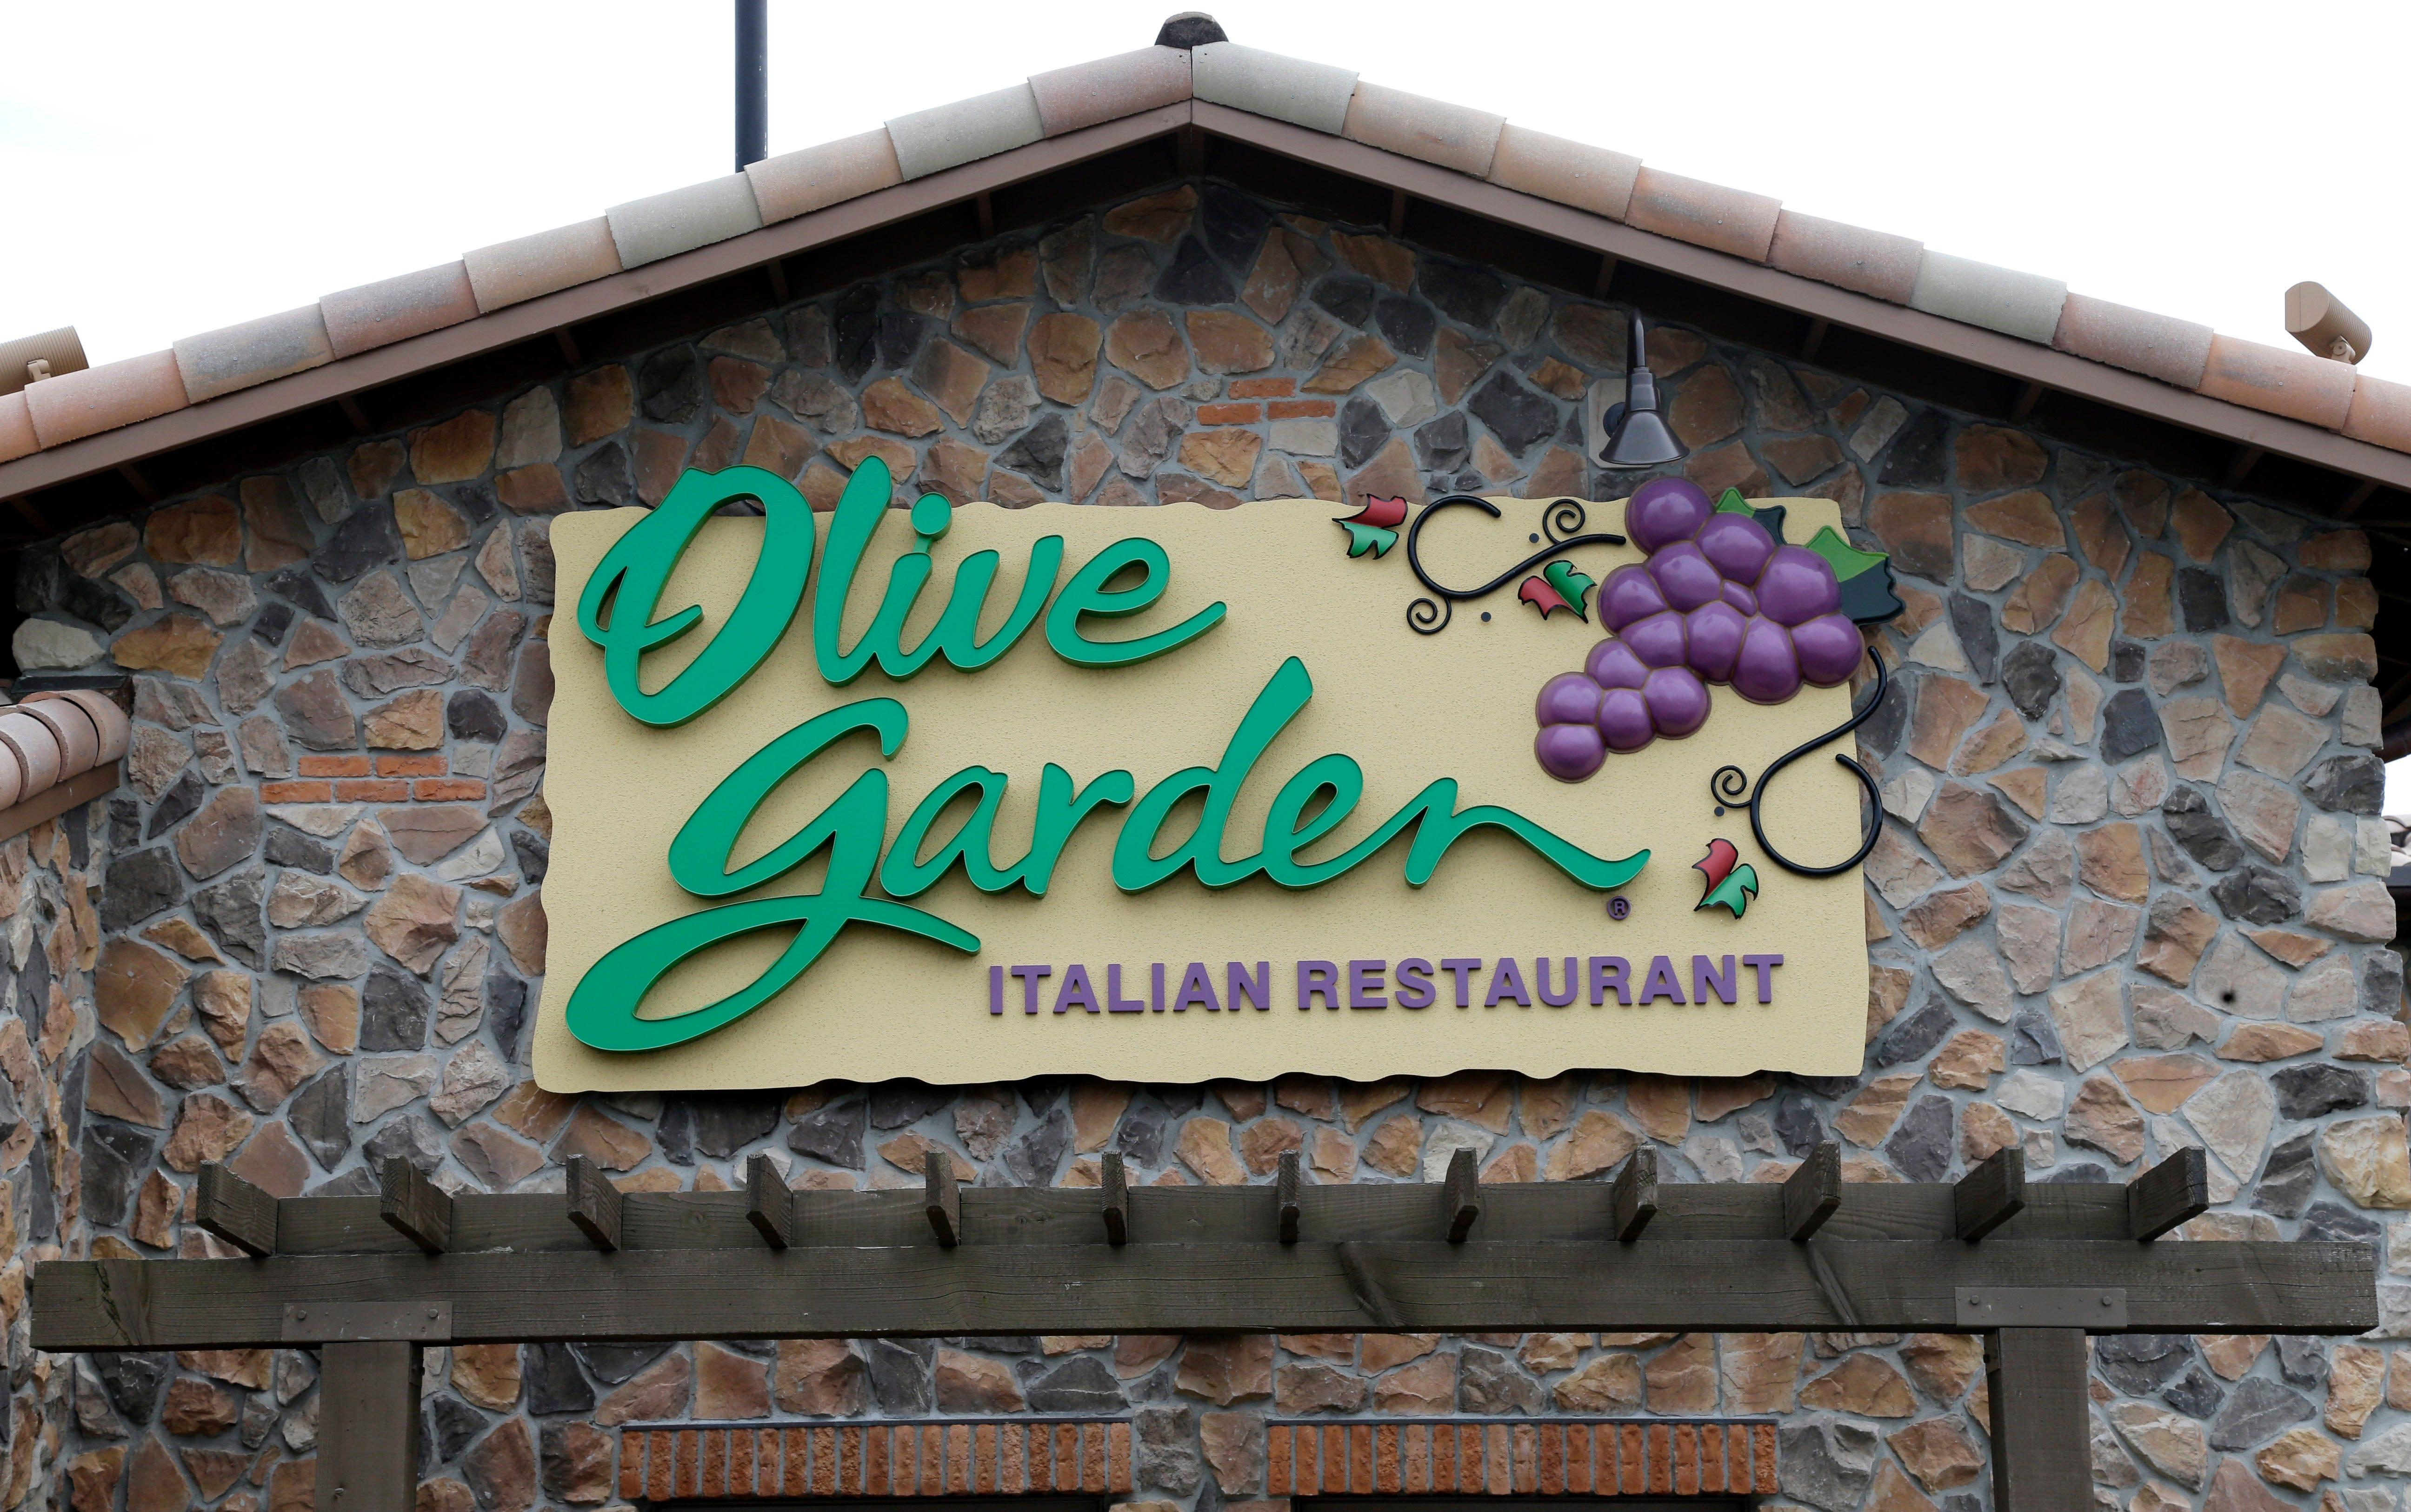 Olive Garden employee, 16, to file lawsuit after customer requested white server, reports say